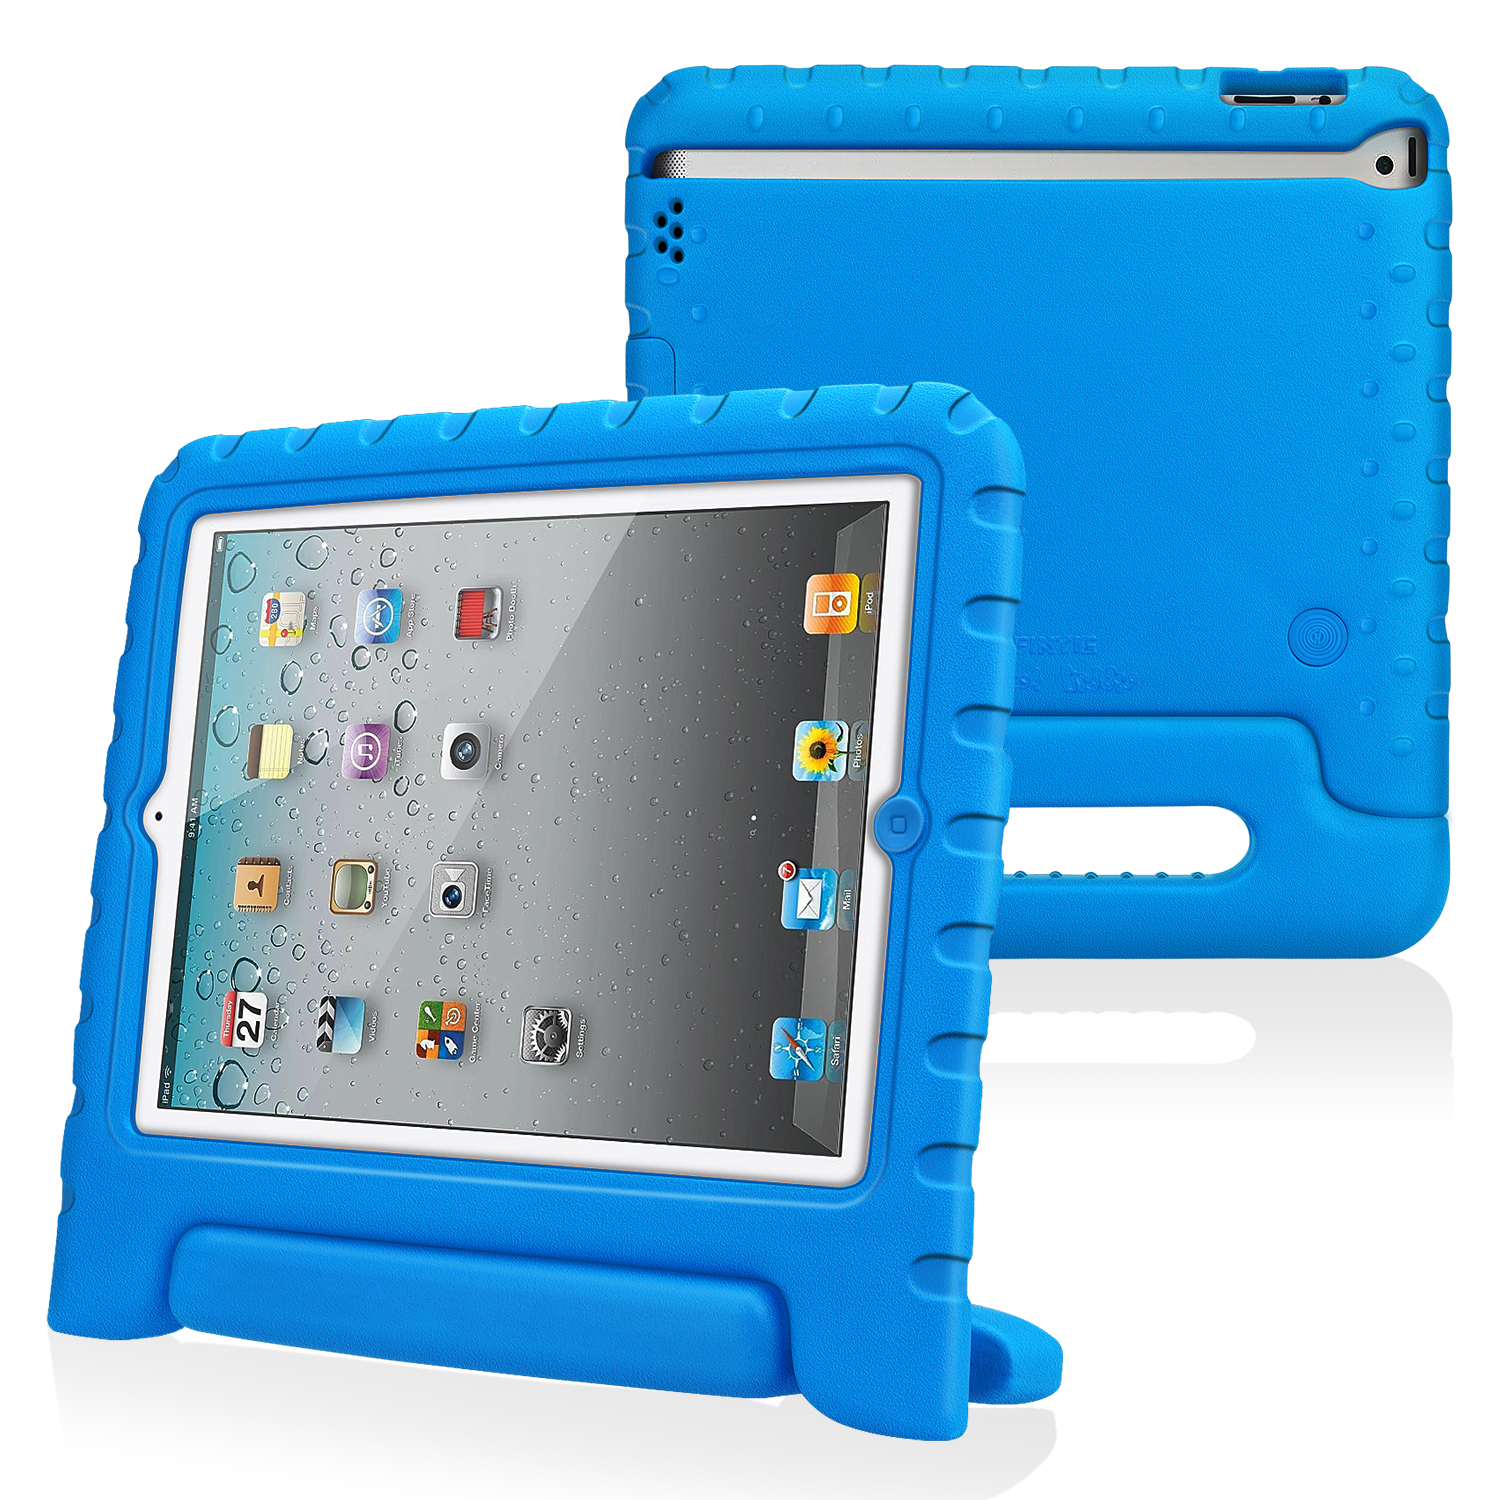 Fintie Apple iPad 2/ iPad 3/ iPad 4 Kiddie Case - Ultra Lightweight Shock Proof Kids Friendly Cover, Blue